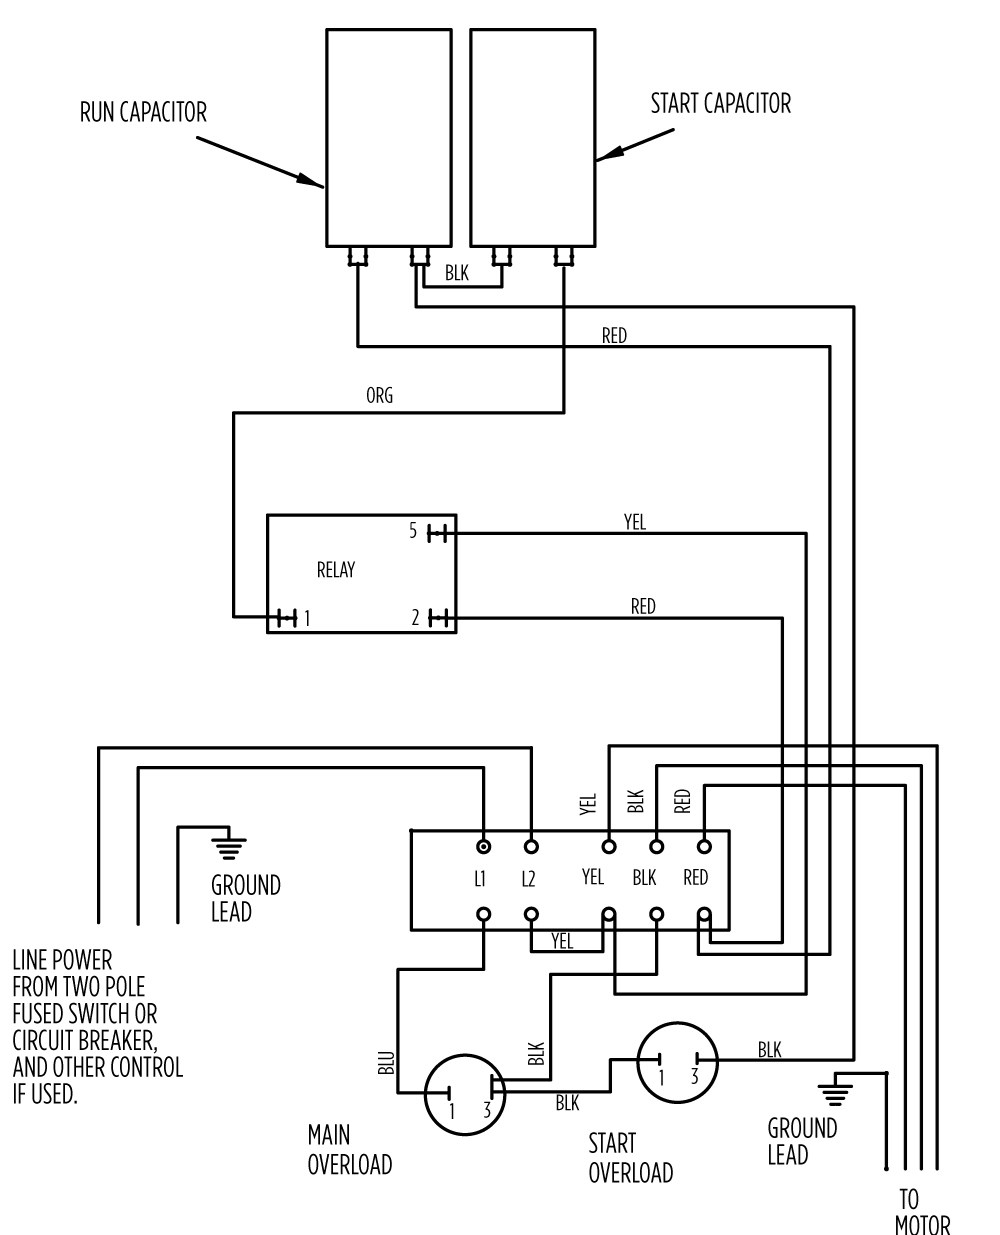 2 hp standard 282 301 8110_aim gallery?format=jpg&quality=80 aim manual page 55 single phase motors and controls motor mercury control box wiring diagram at readyjetset.co